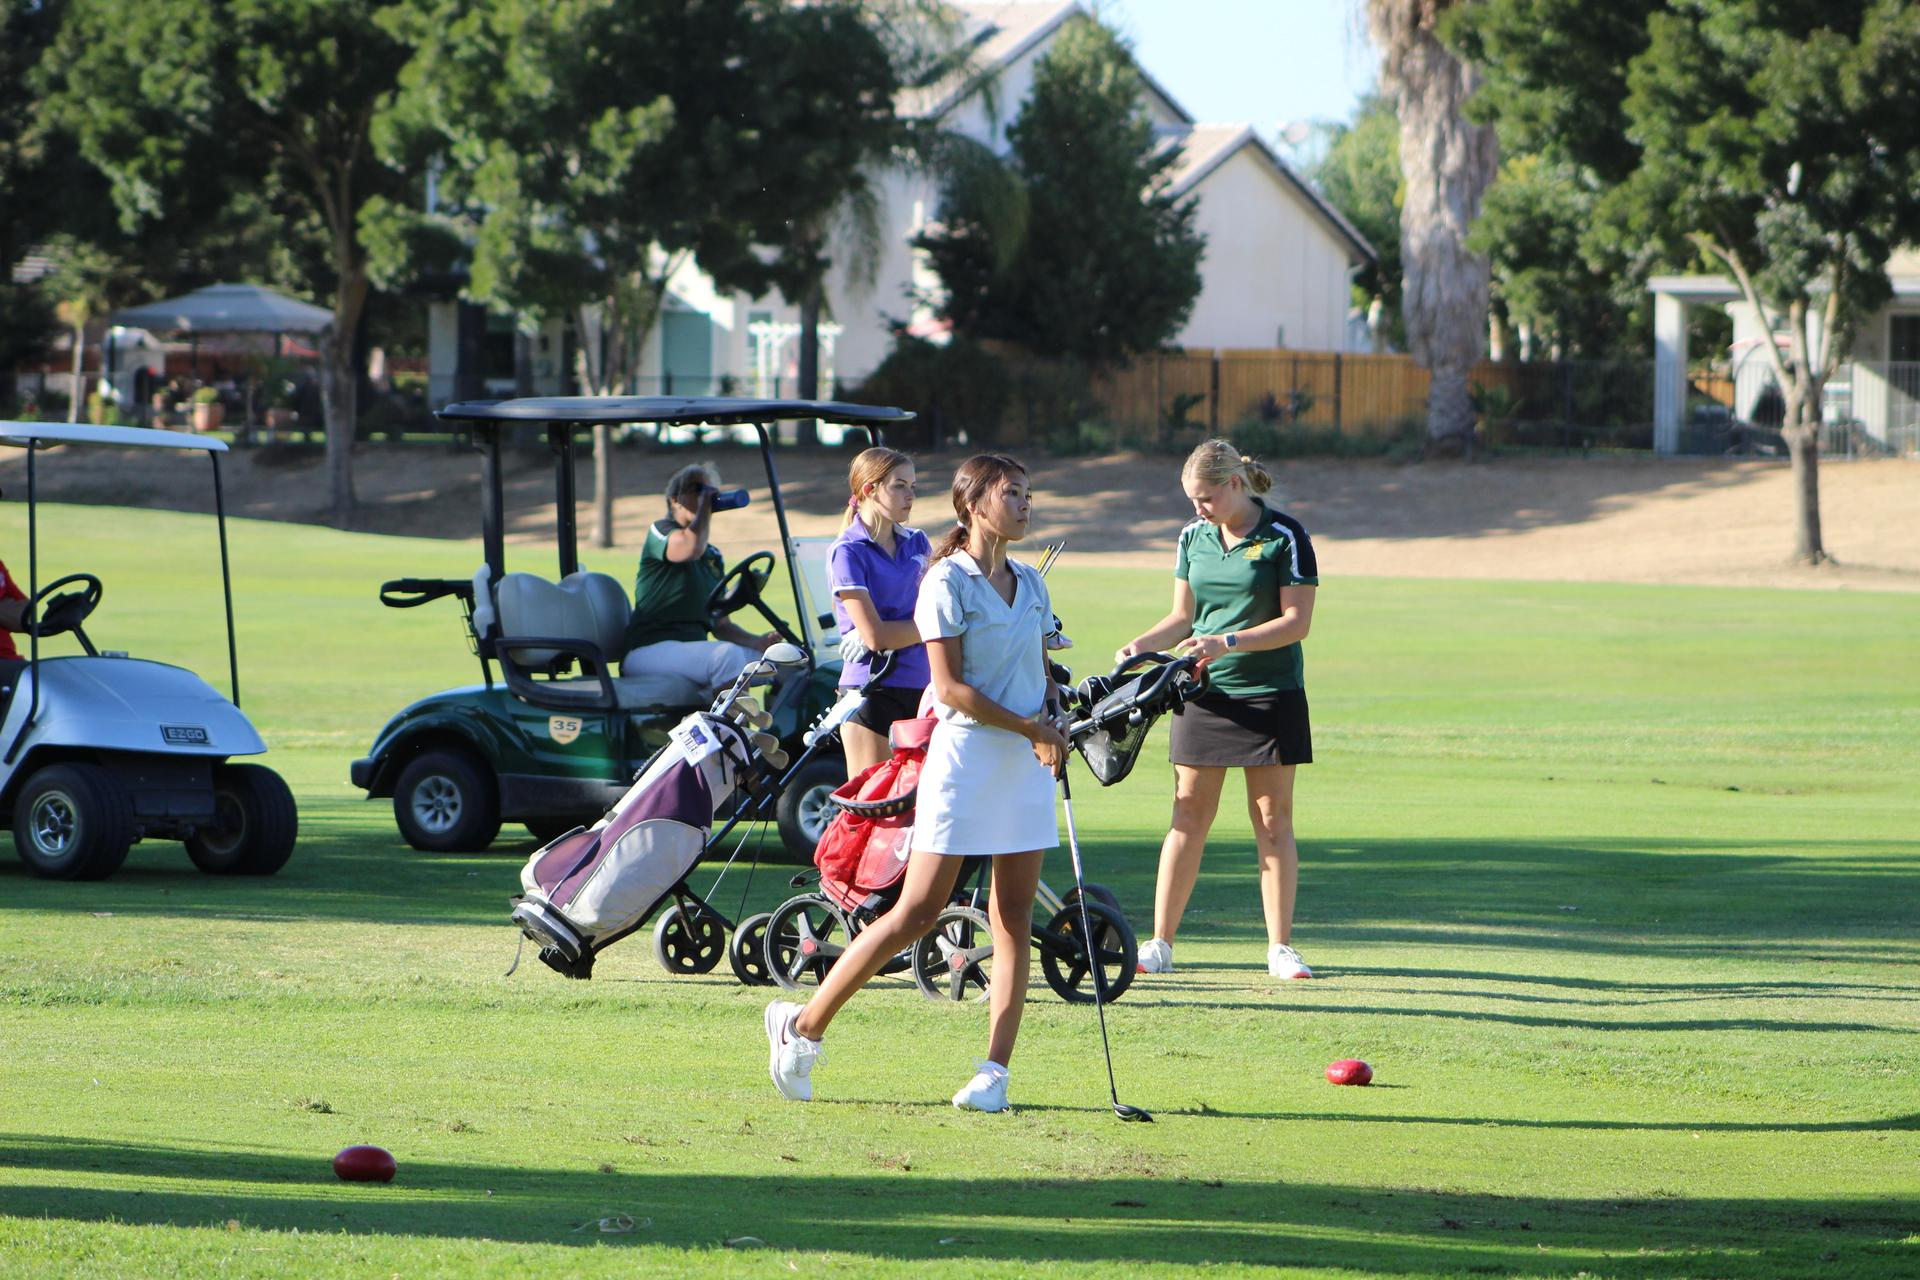 Girls playing golf